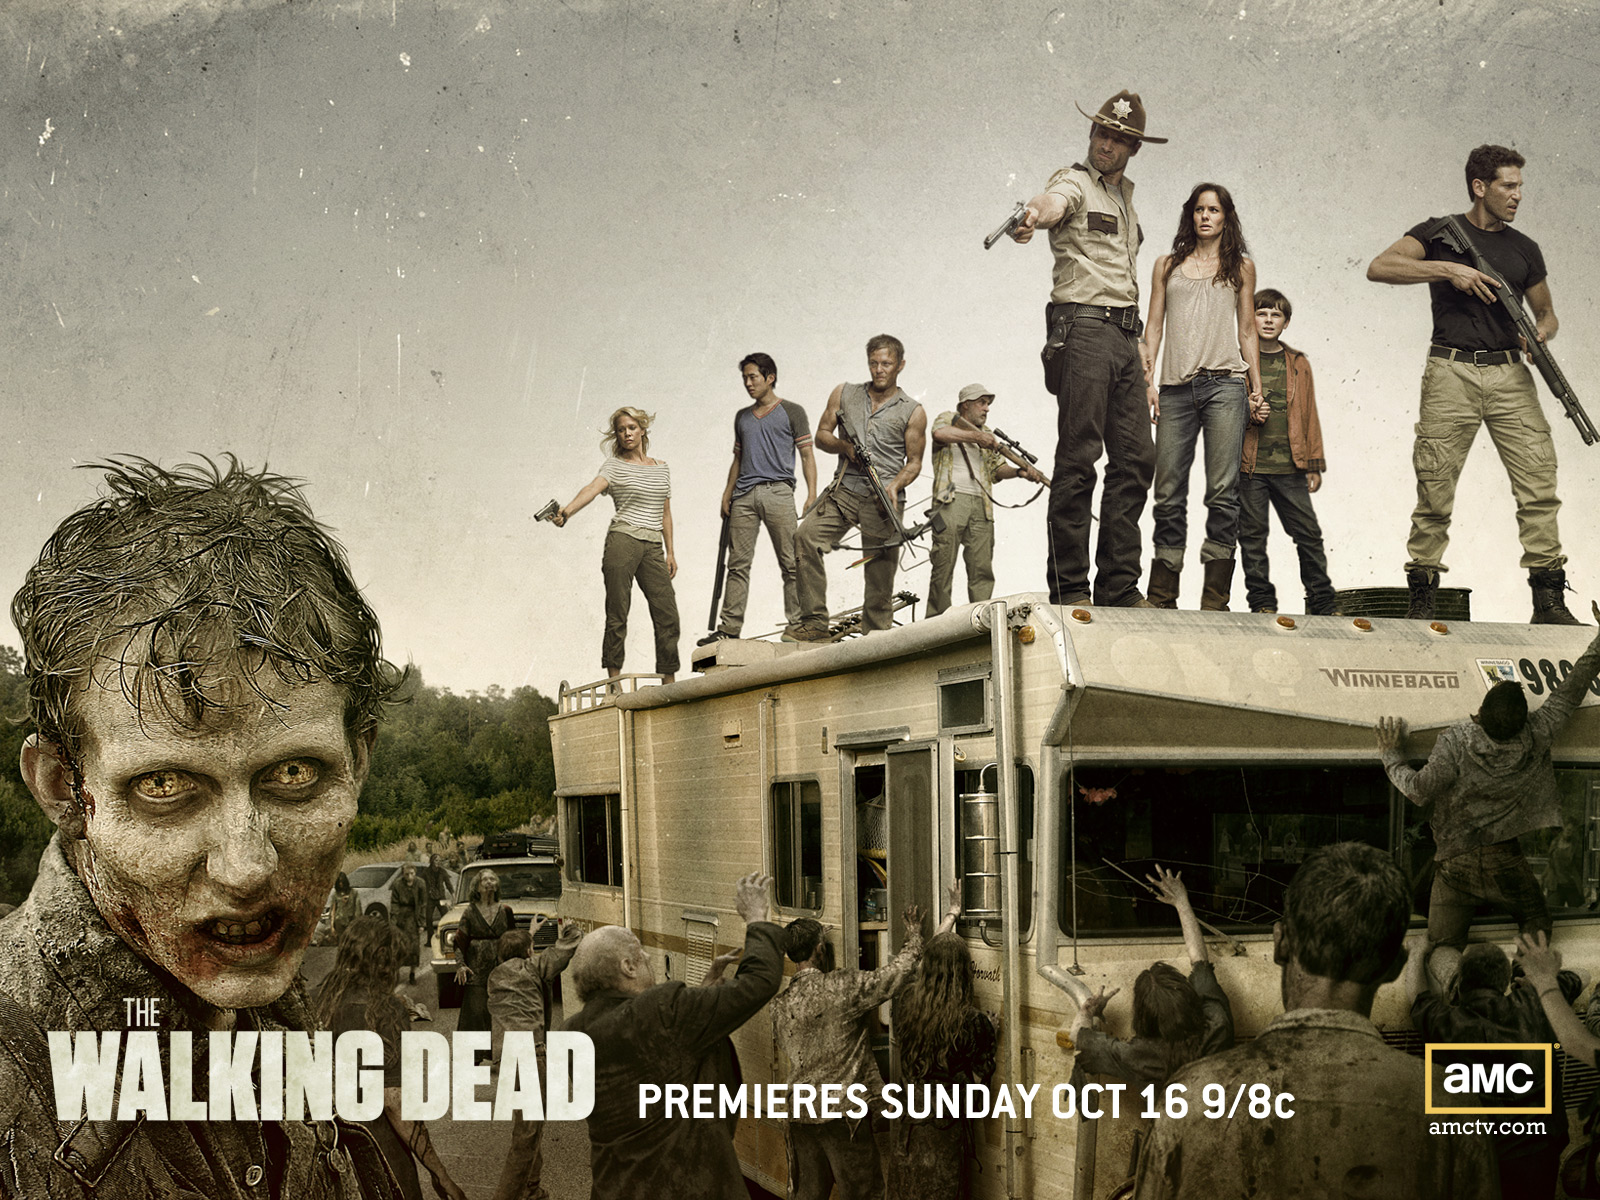 http://4.bp.blogspot.com/-KJQ9-IgcajE/T38VIWSH4gI/AAAAAAAAAi4/TLHJLPxgB4o/s1600/Season-2-Wallpaper-the-walking-dead-25689003-1600-1200+-+Copie.jpg